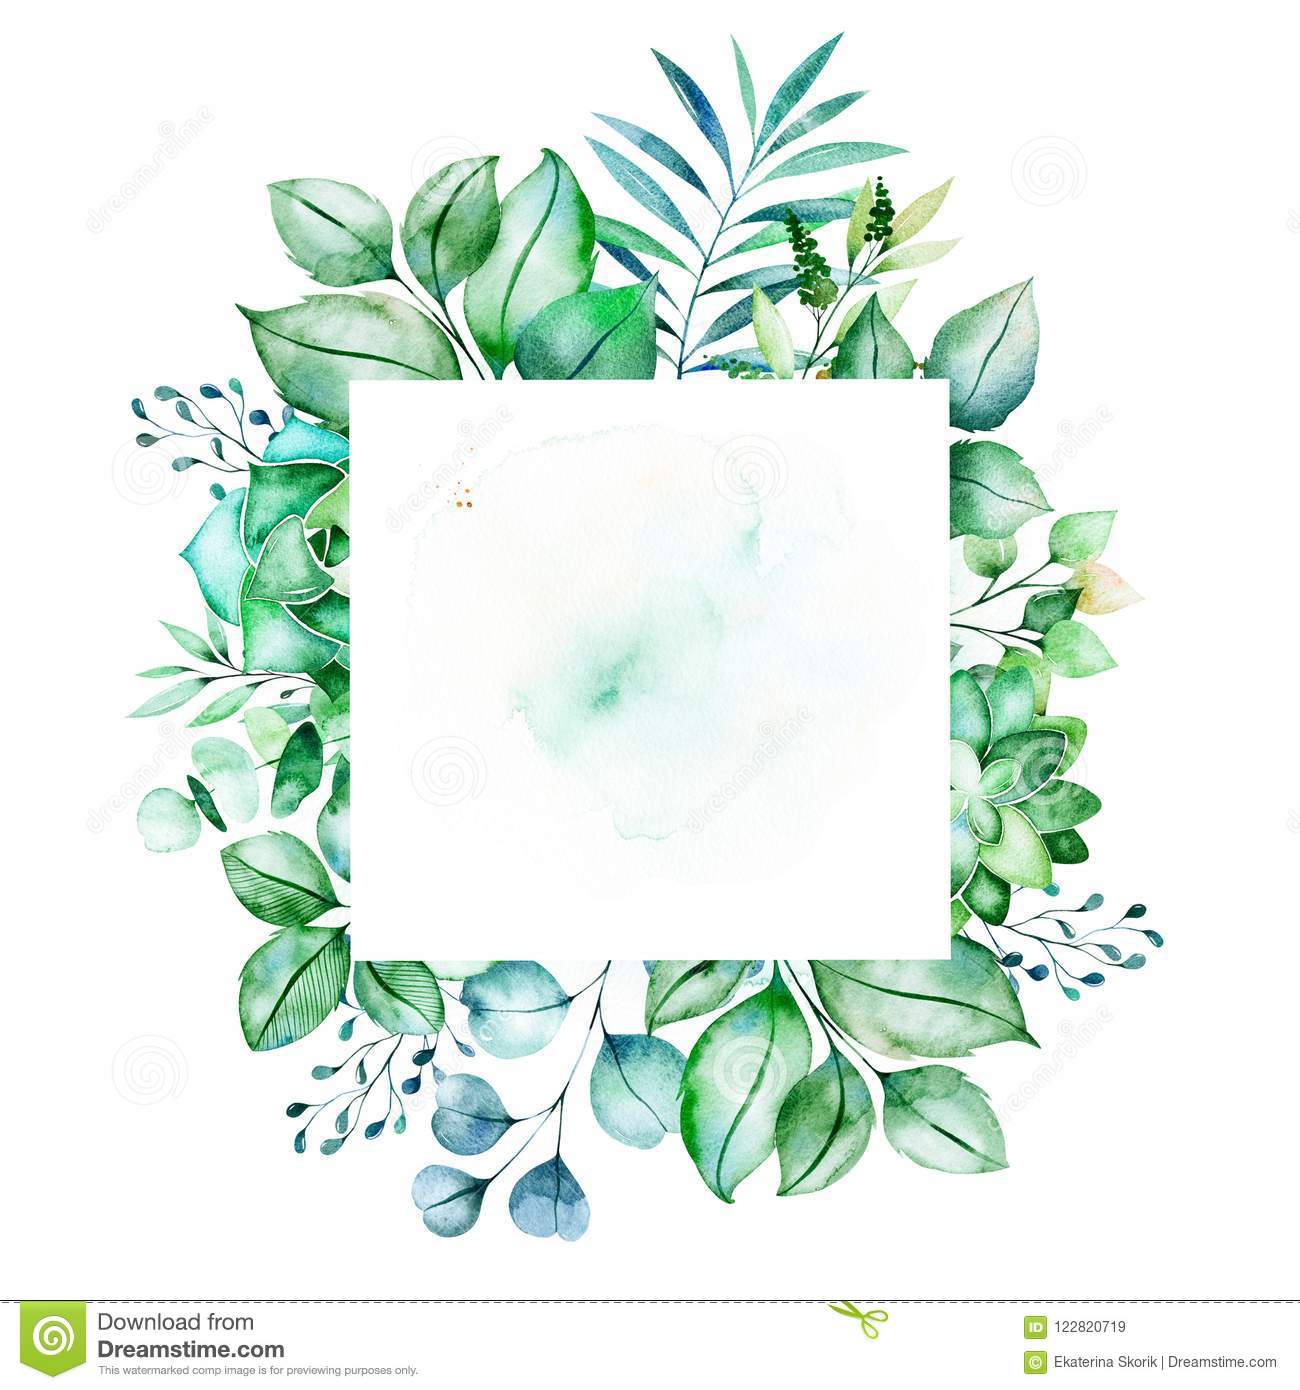 Leafy Frame Border With Succulent Plants Palm Leaves Branches Stock Illustration Illustration Of Colorful Border 122820719